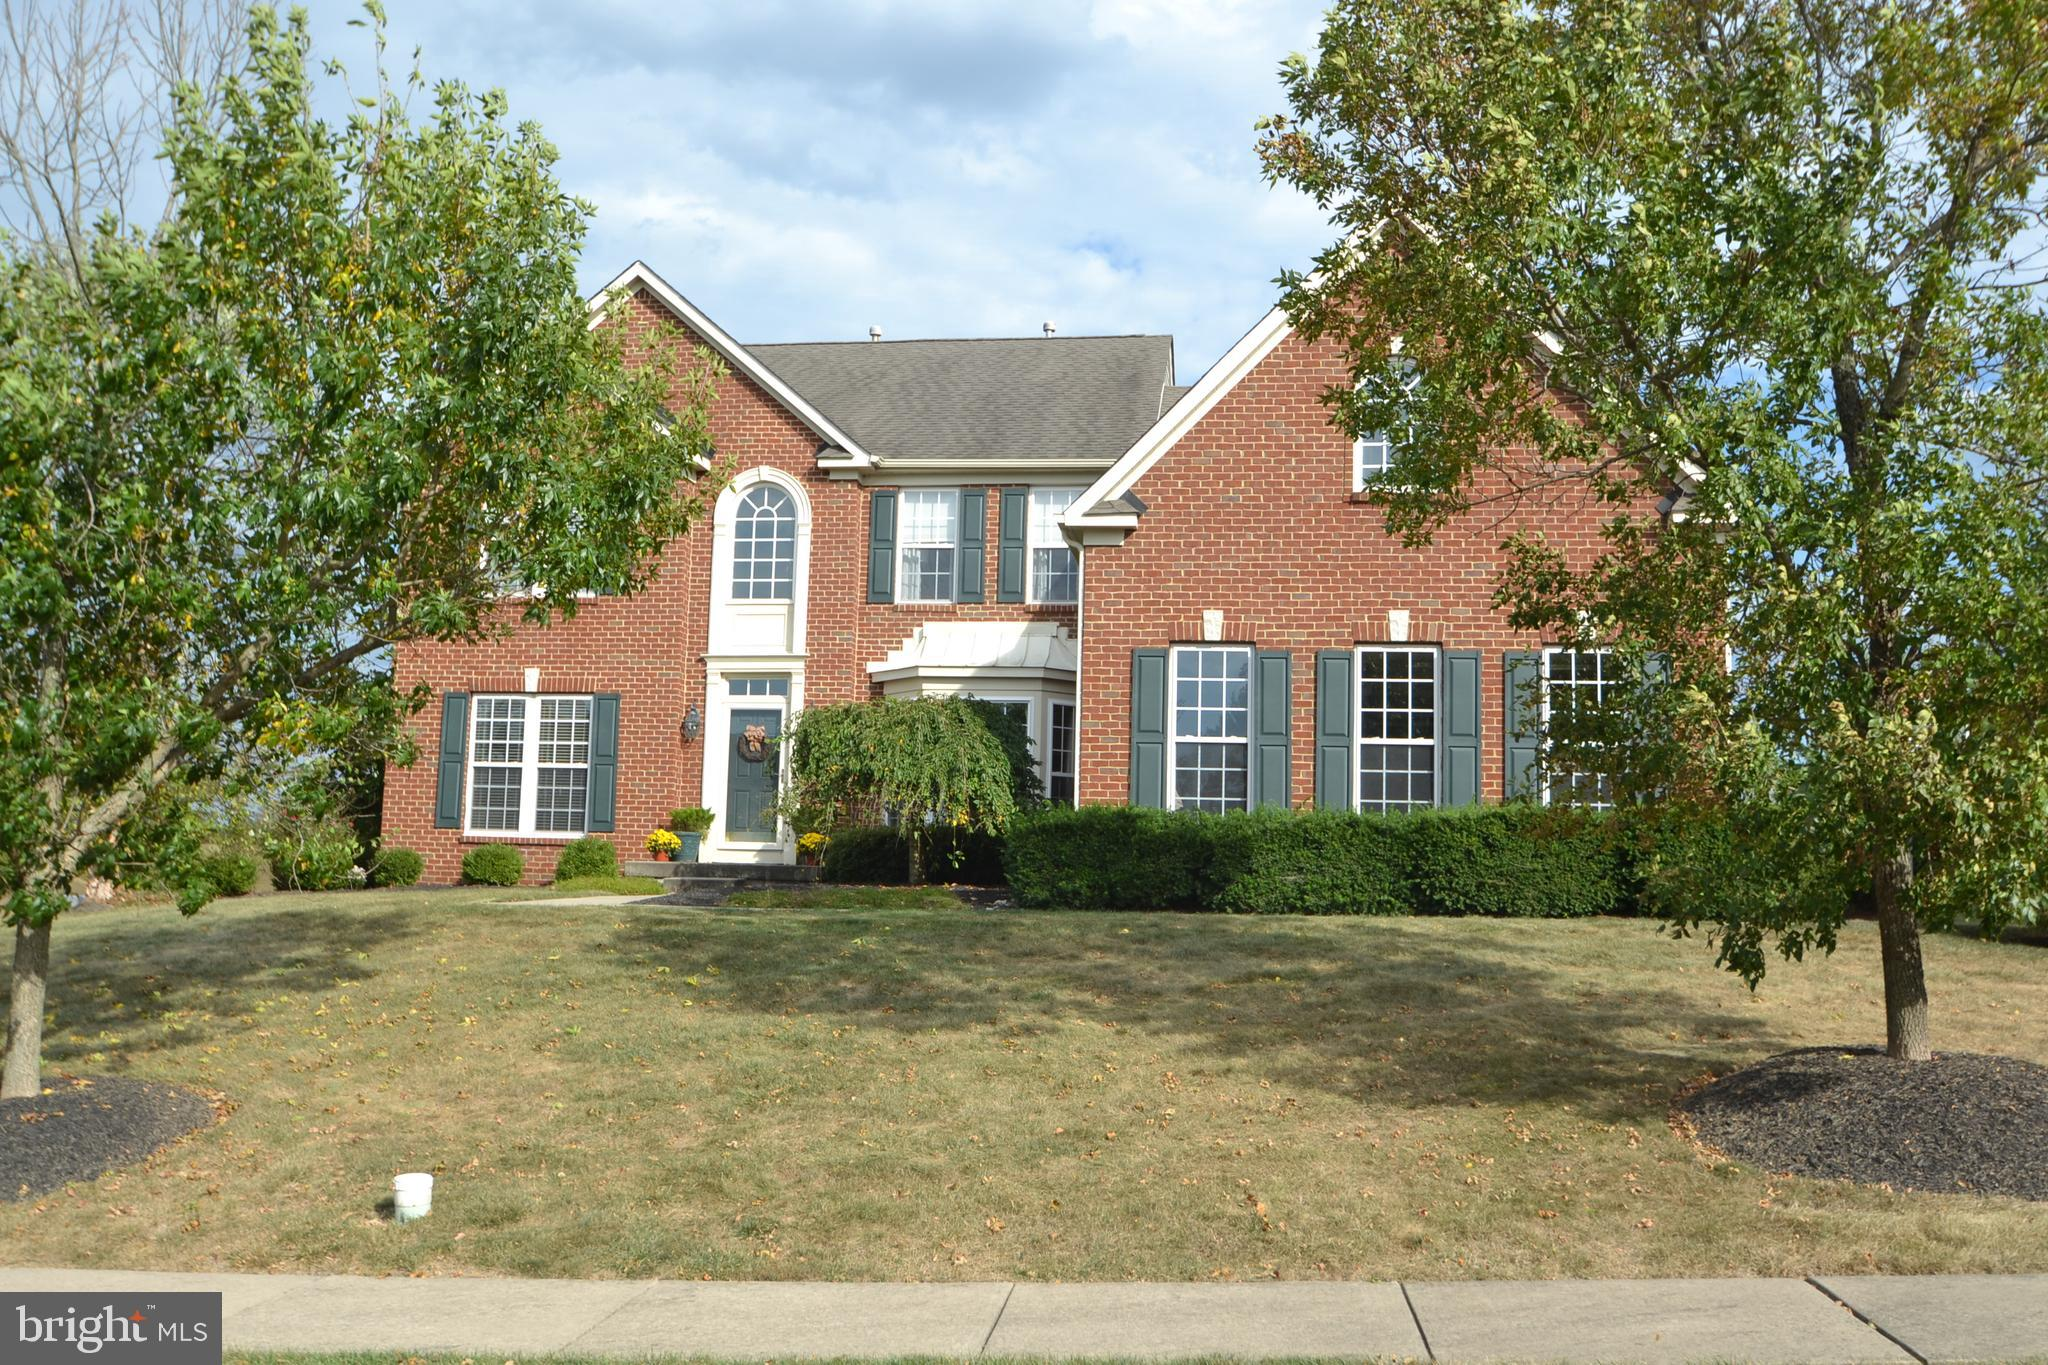 920 CLUBHOUSE DRIVE, HARLEYSVILLE, PA 19438